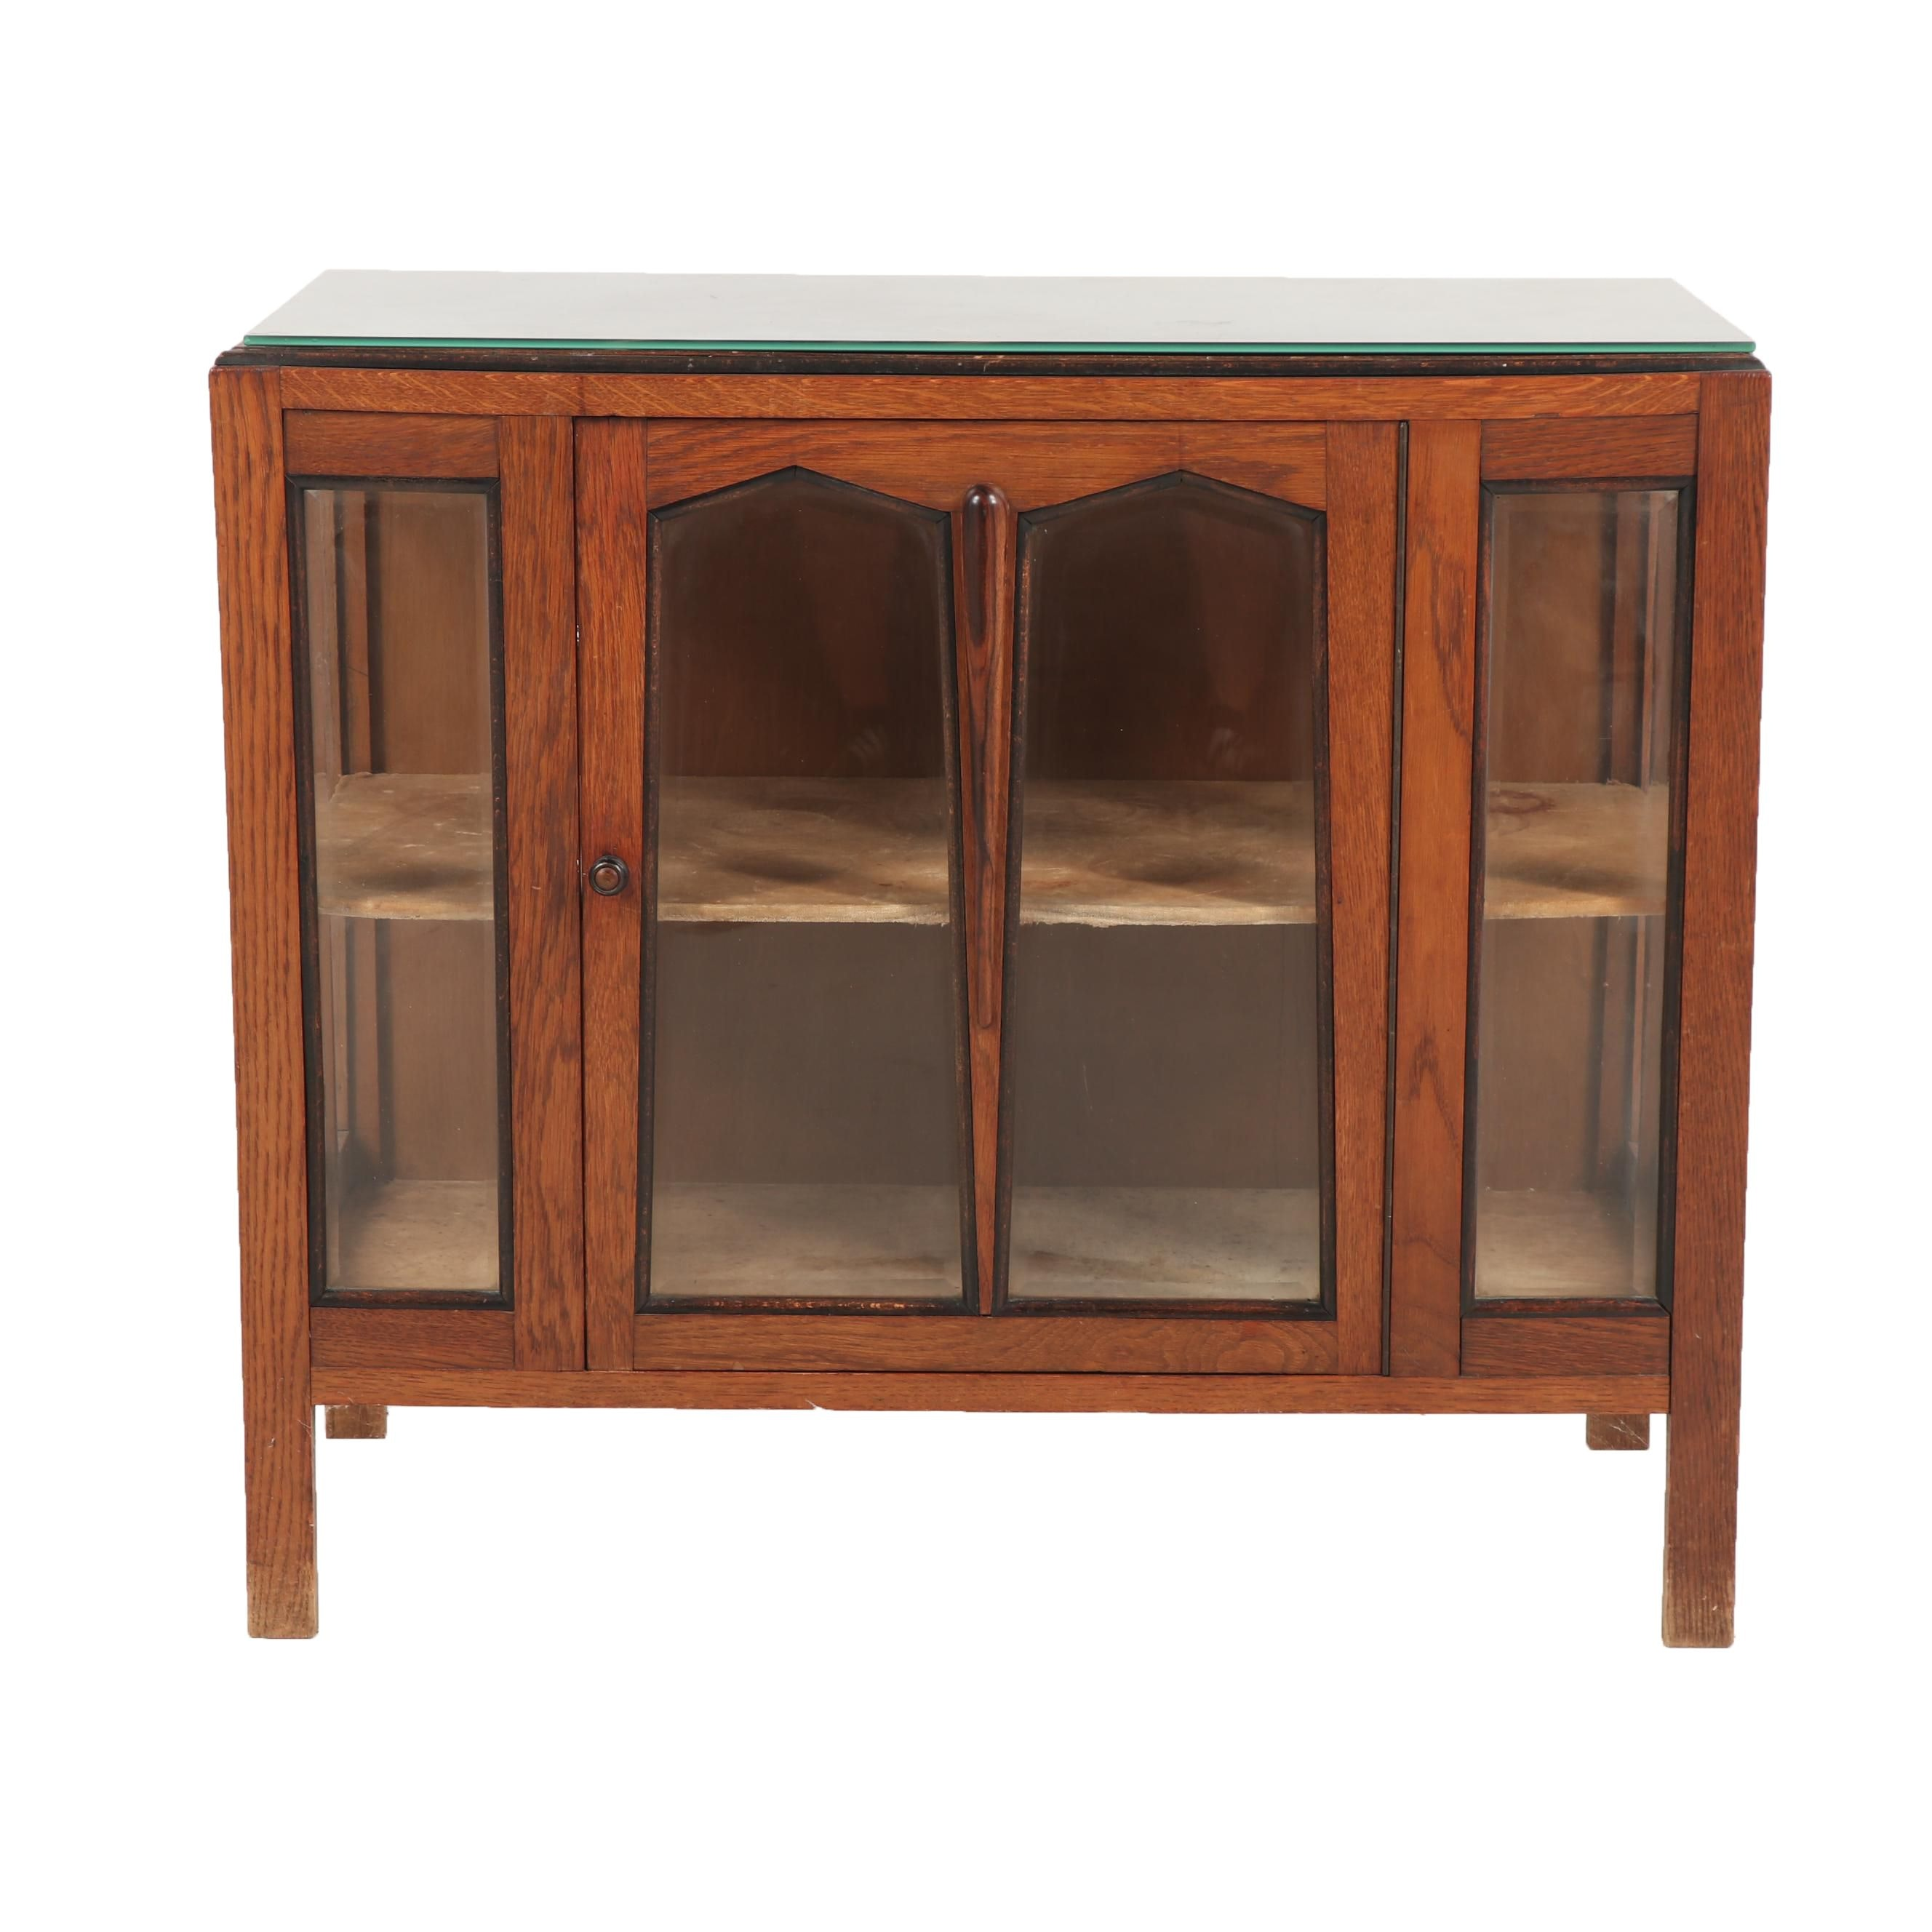 Display Cabinet with Mirrored Top, Mid 20th Century